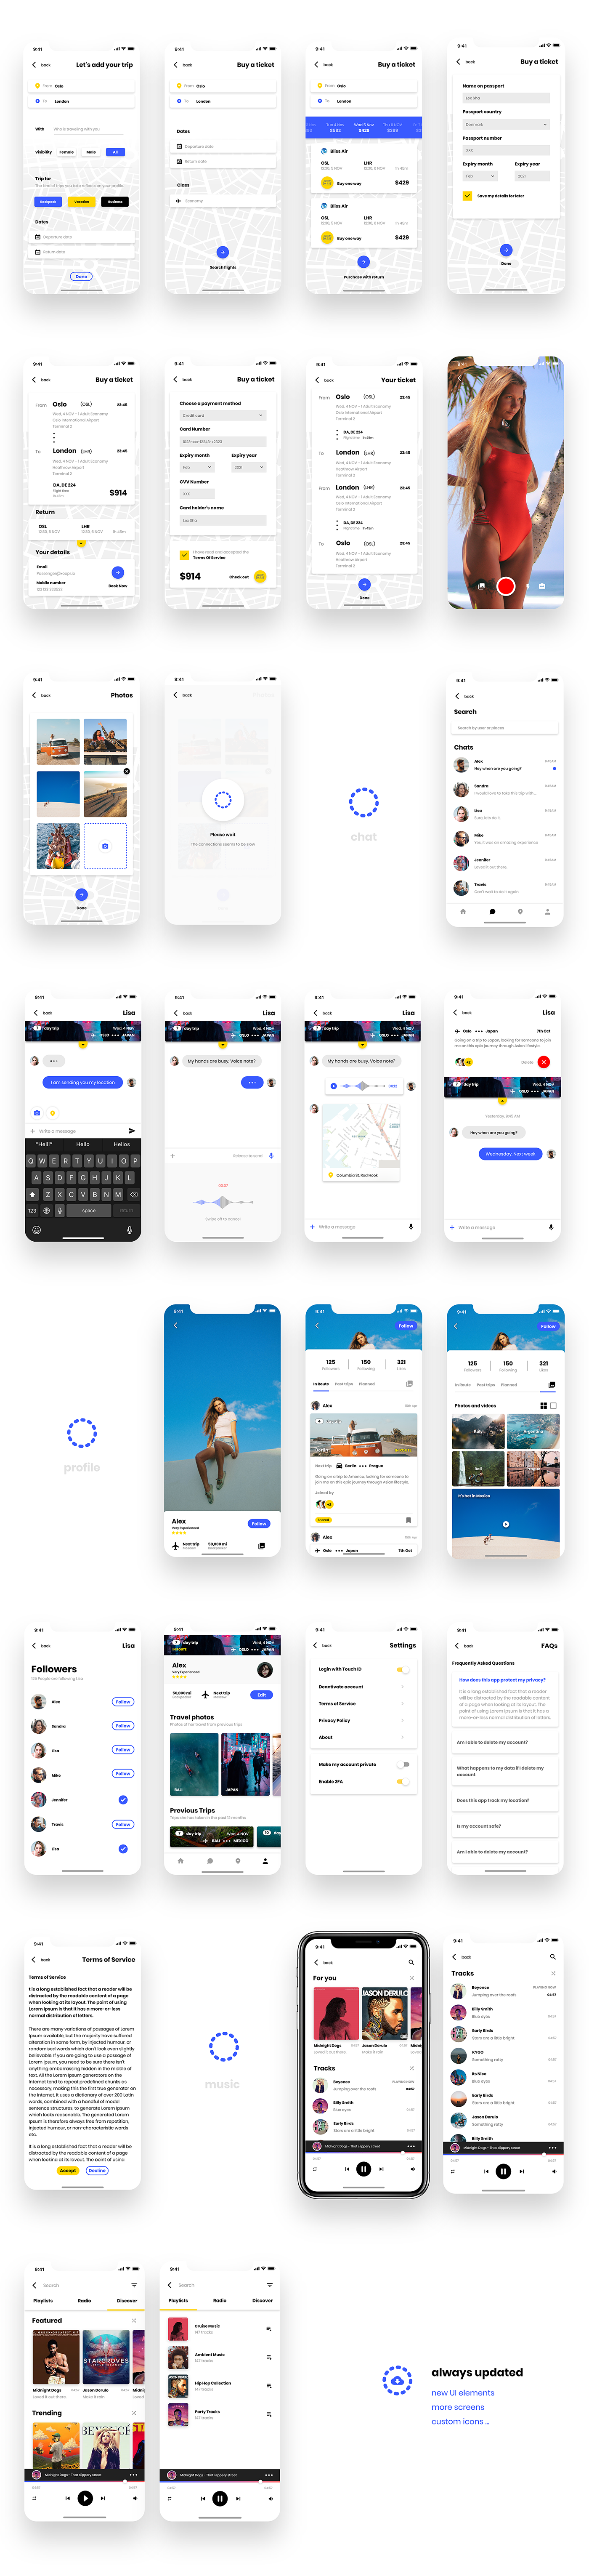 Backpack - UI Kit Free for Adobe XD - Includes 50+ customizable screens across seven categories